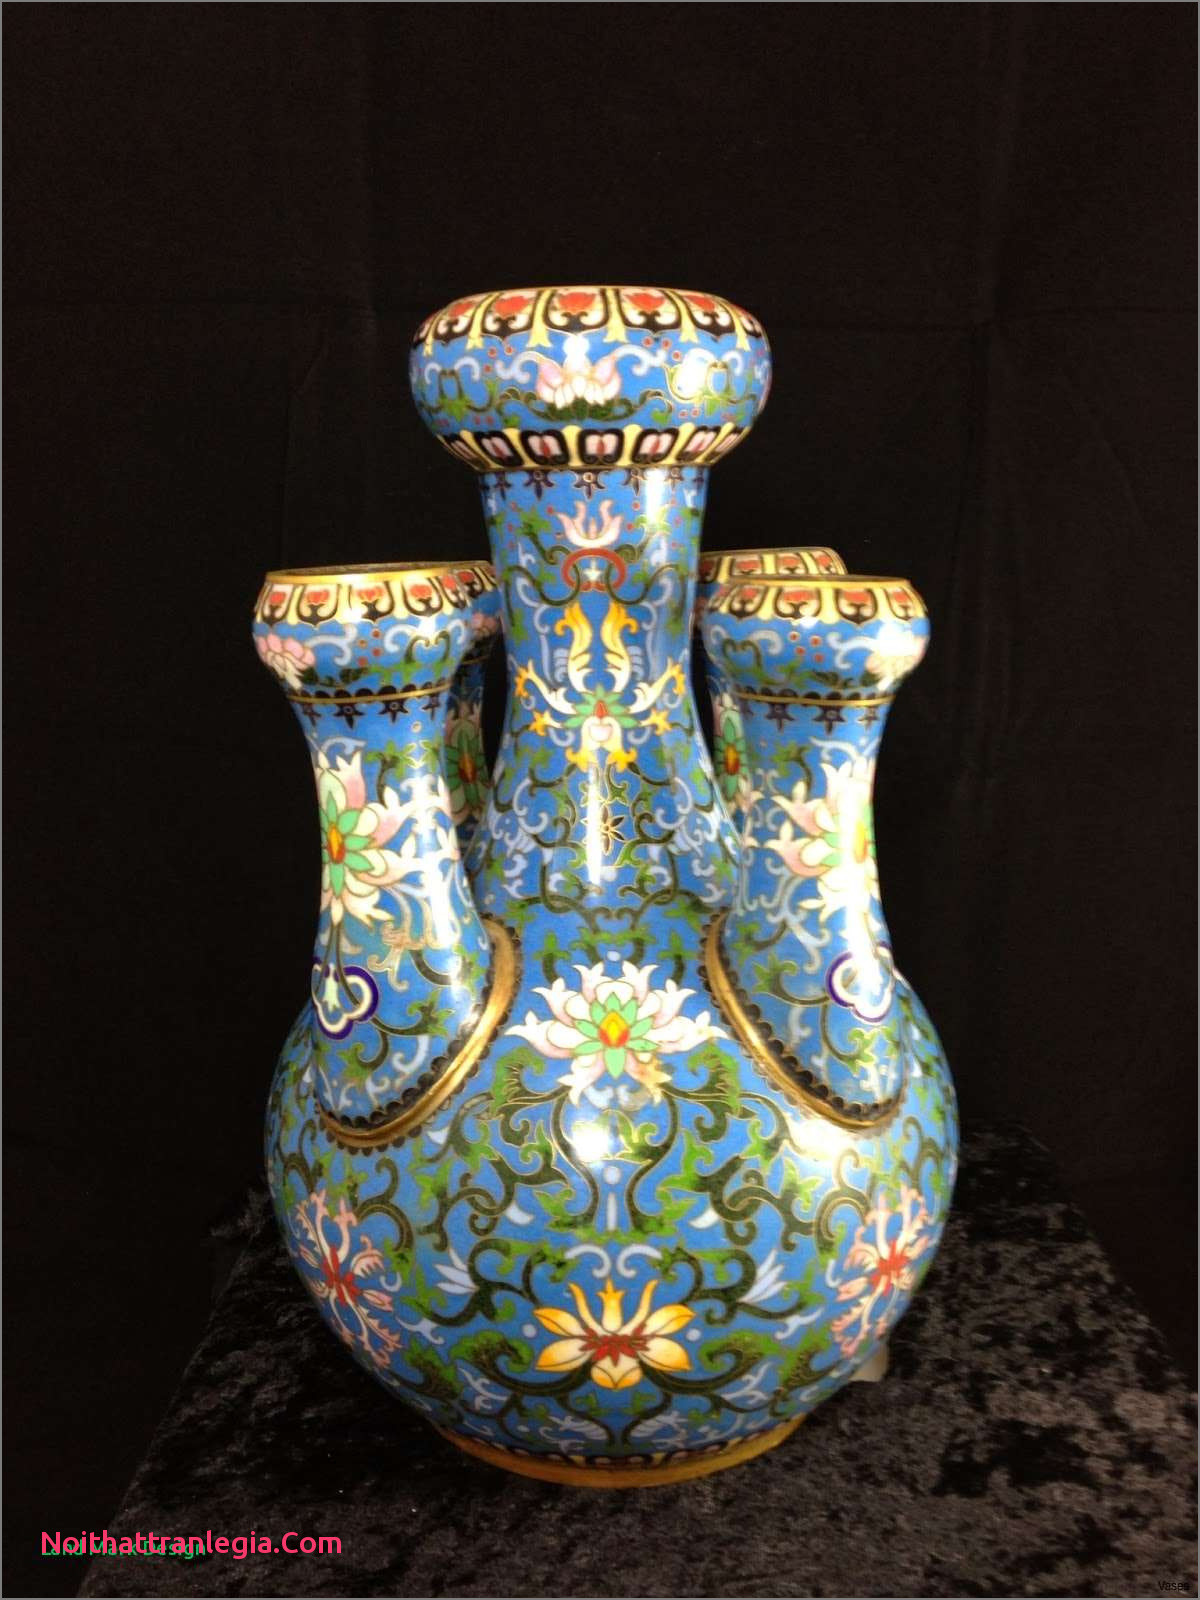 big oriental vases of 20 chinese antique vase noithattranlegia vases design with 213 1h vases antique asian the increased trade of chinese ware during 16th century has significantly